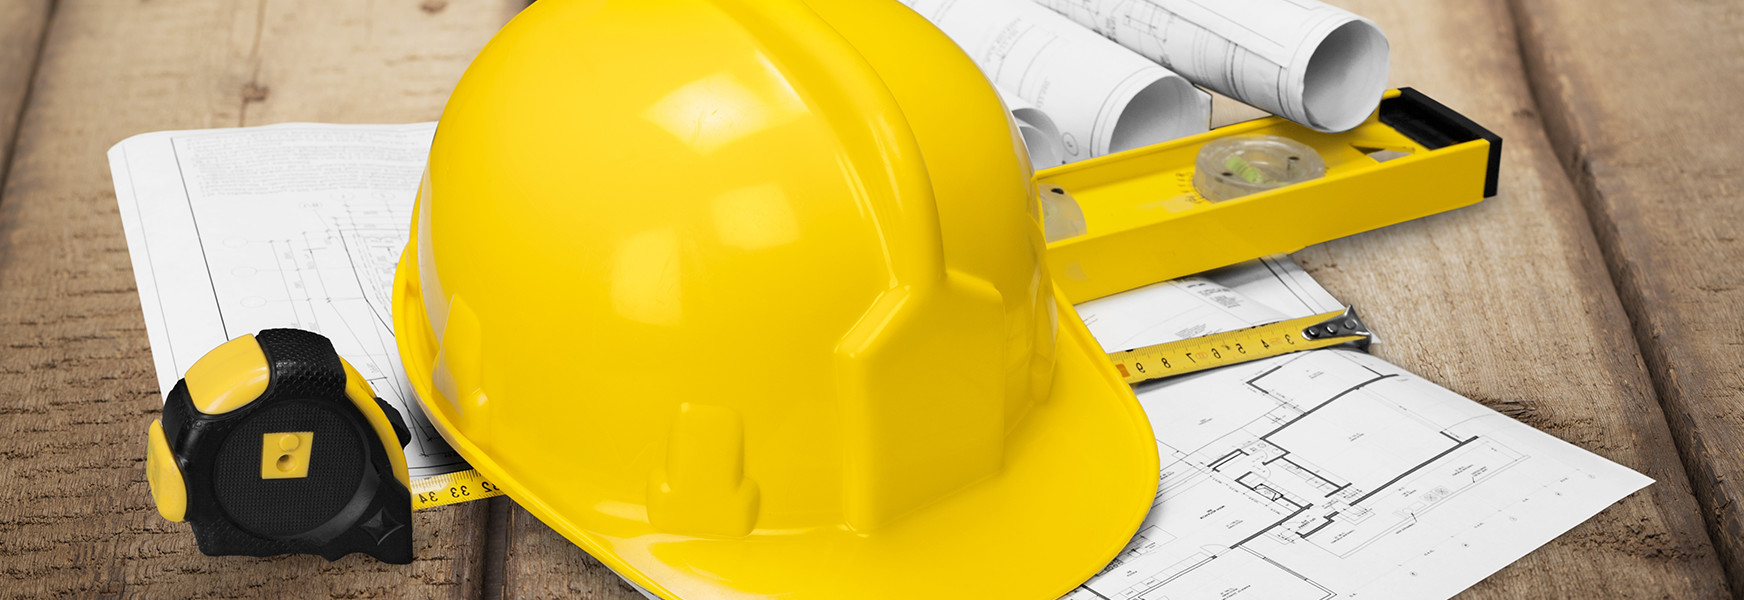 construction hard hat, building plans and tape measurer